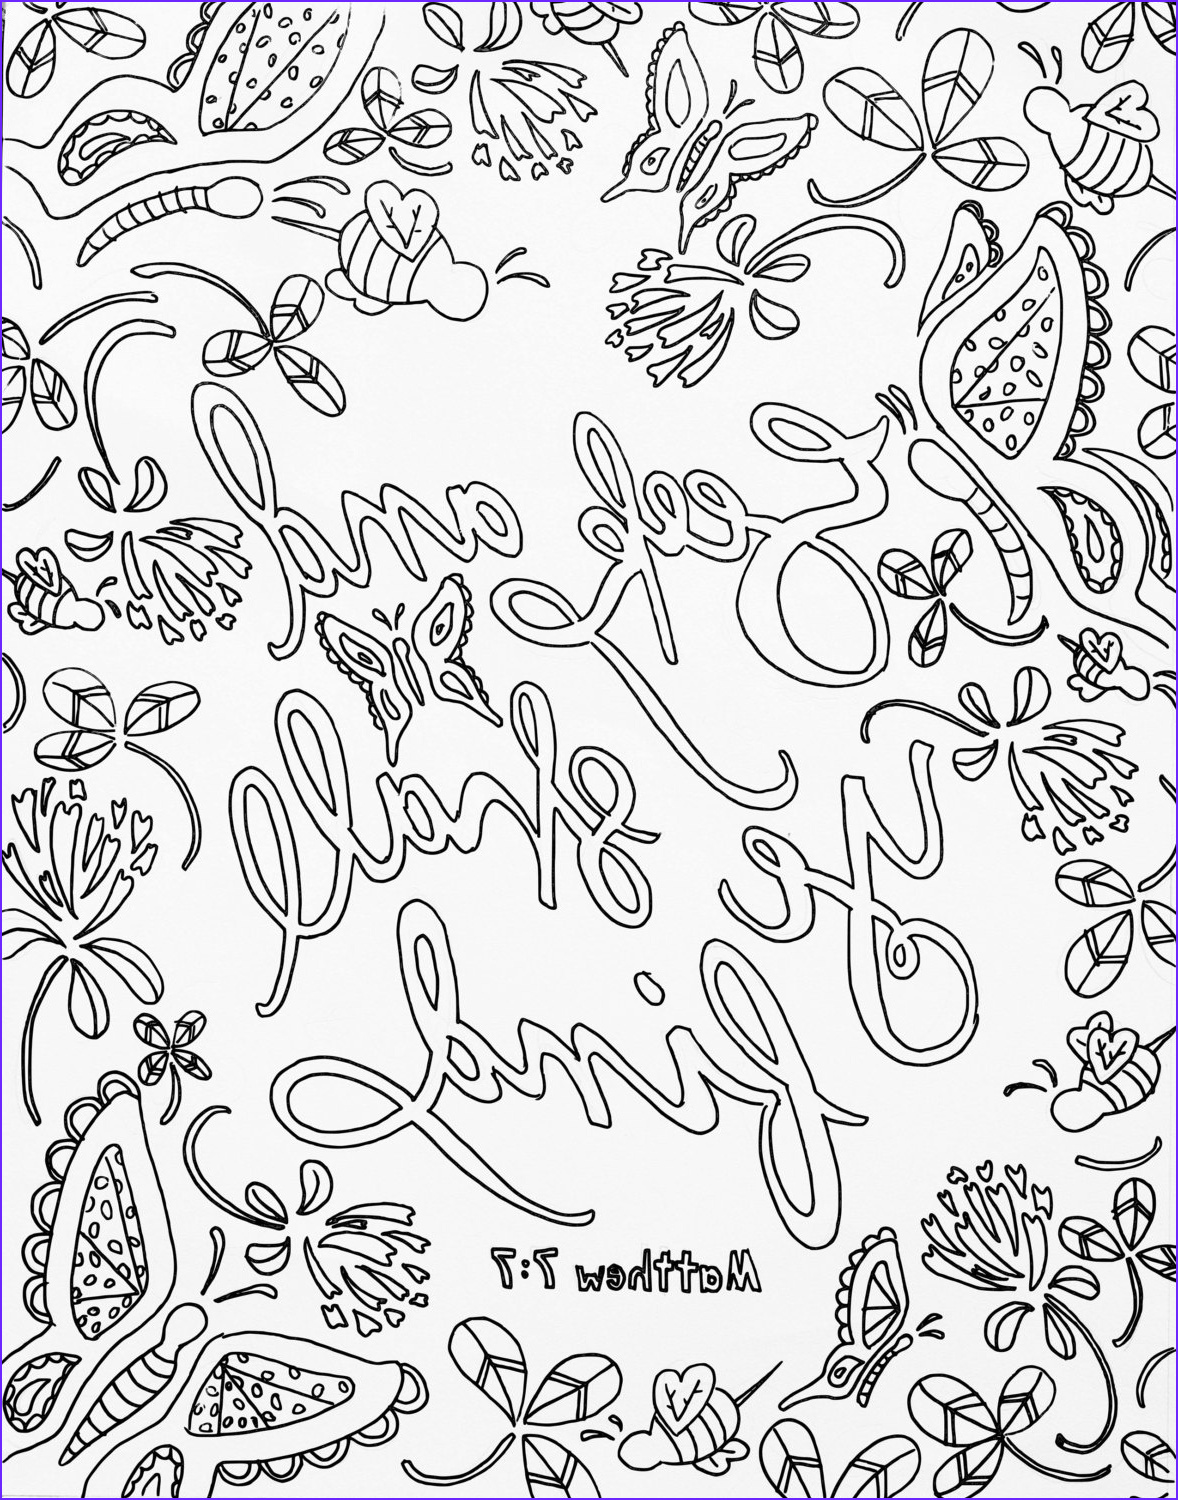 Bible Verse Coloring Pages Free Cool Image Free Scripture Coloring Pages Download